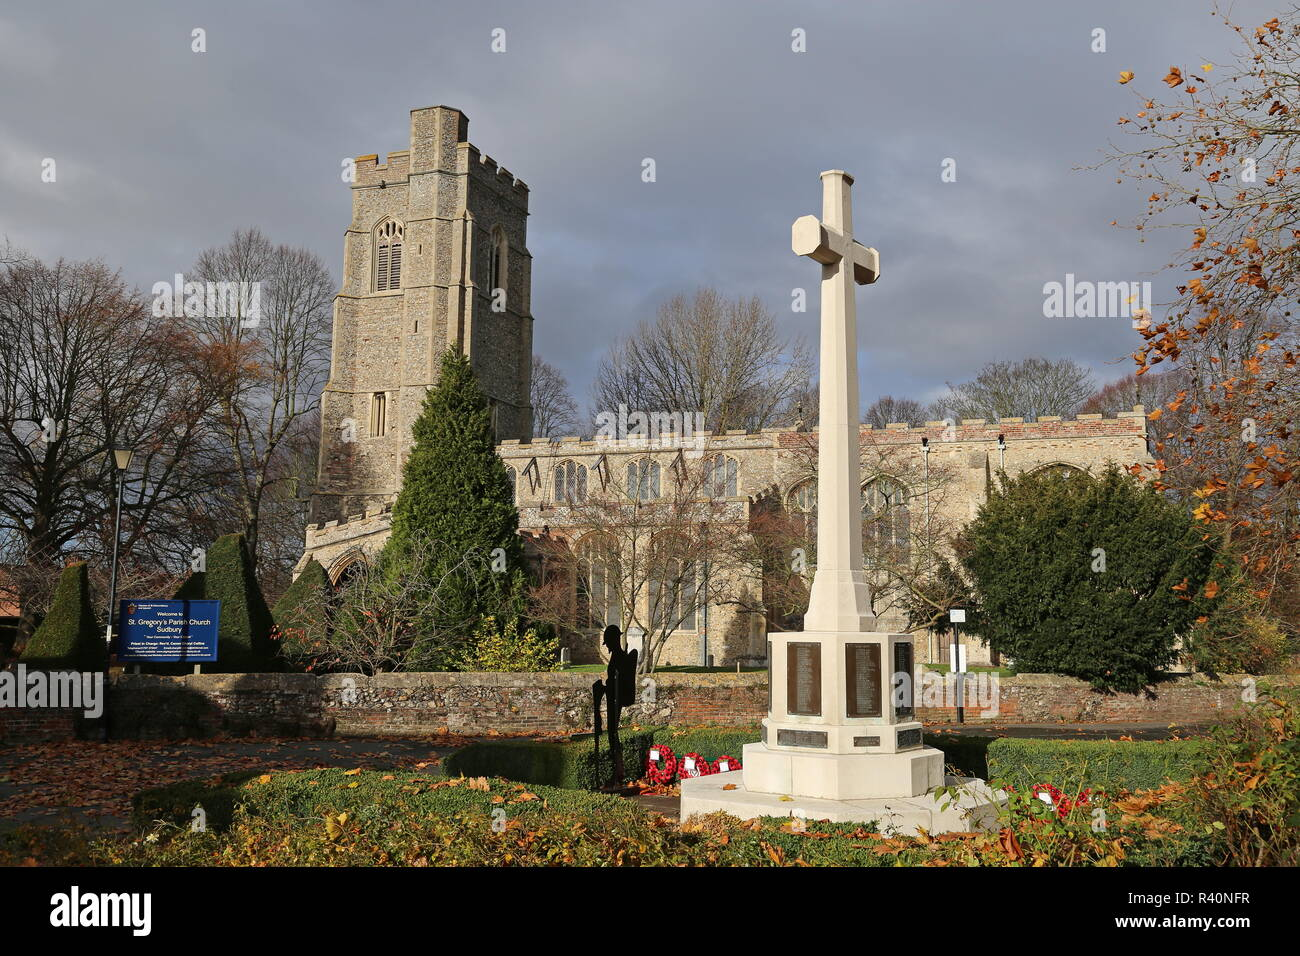 St Gregory's Church, Gregory Street, Sudbury, Babergh district, Suffolk, East Anglia, England, Great Britain, United Kingdom, UK, Europe - Stock Image